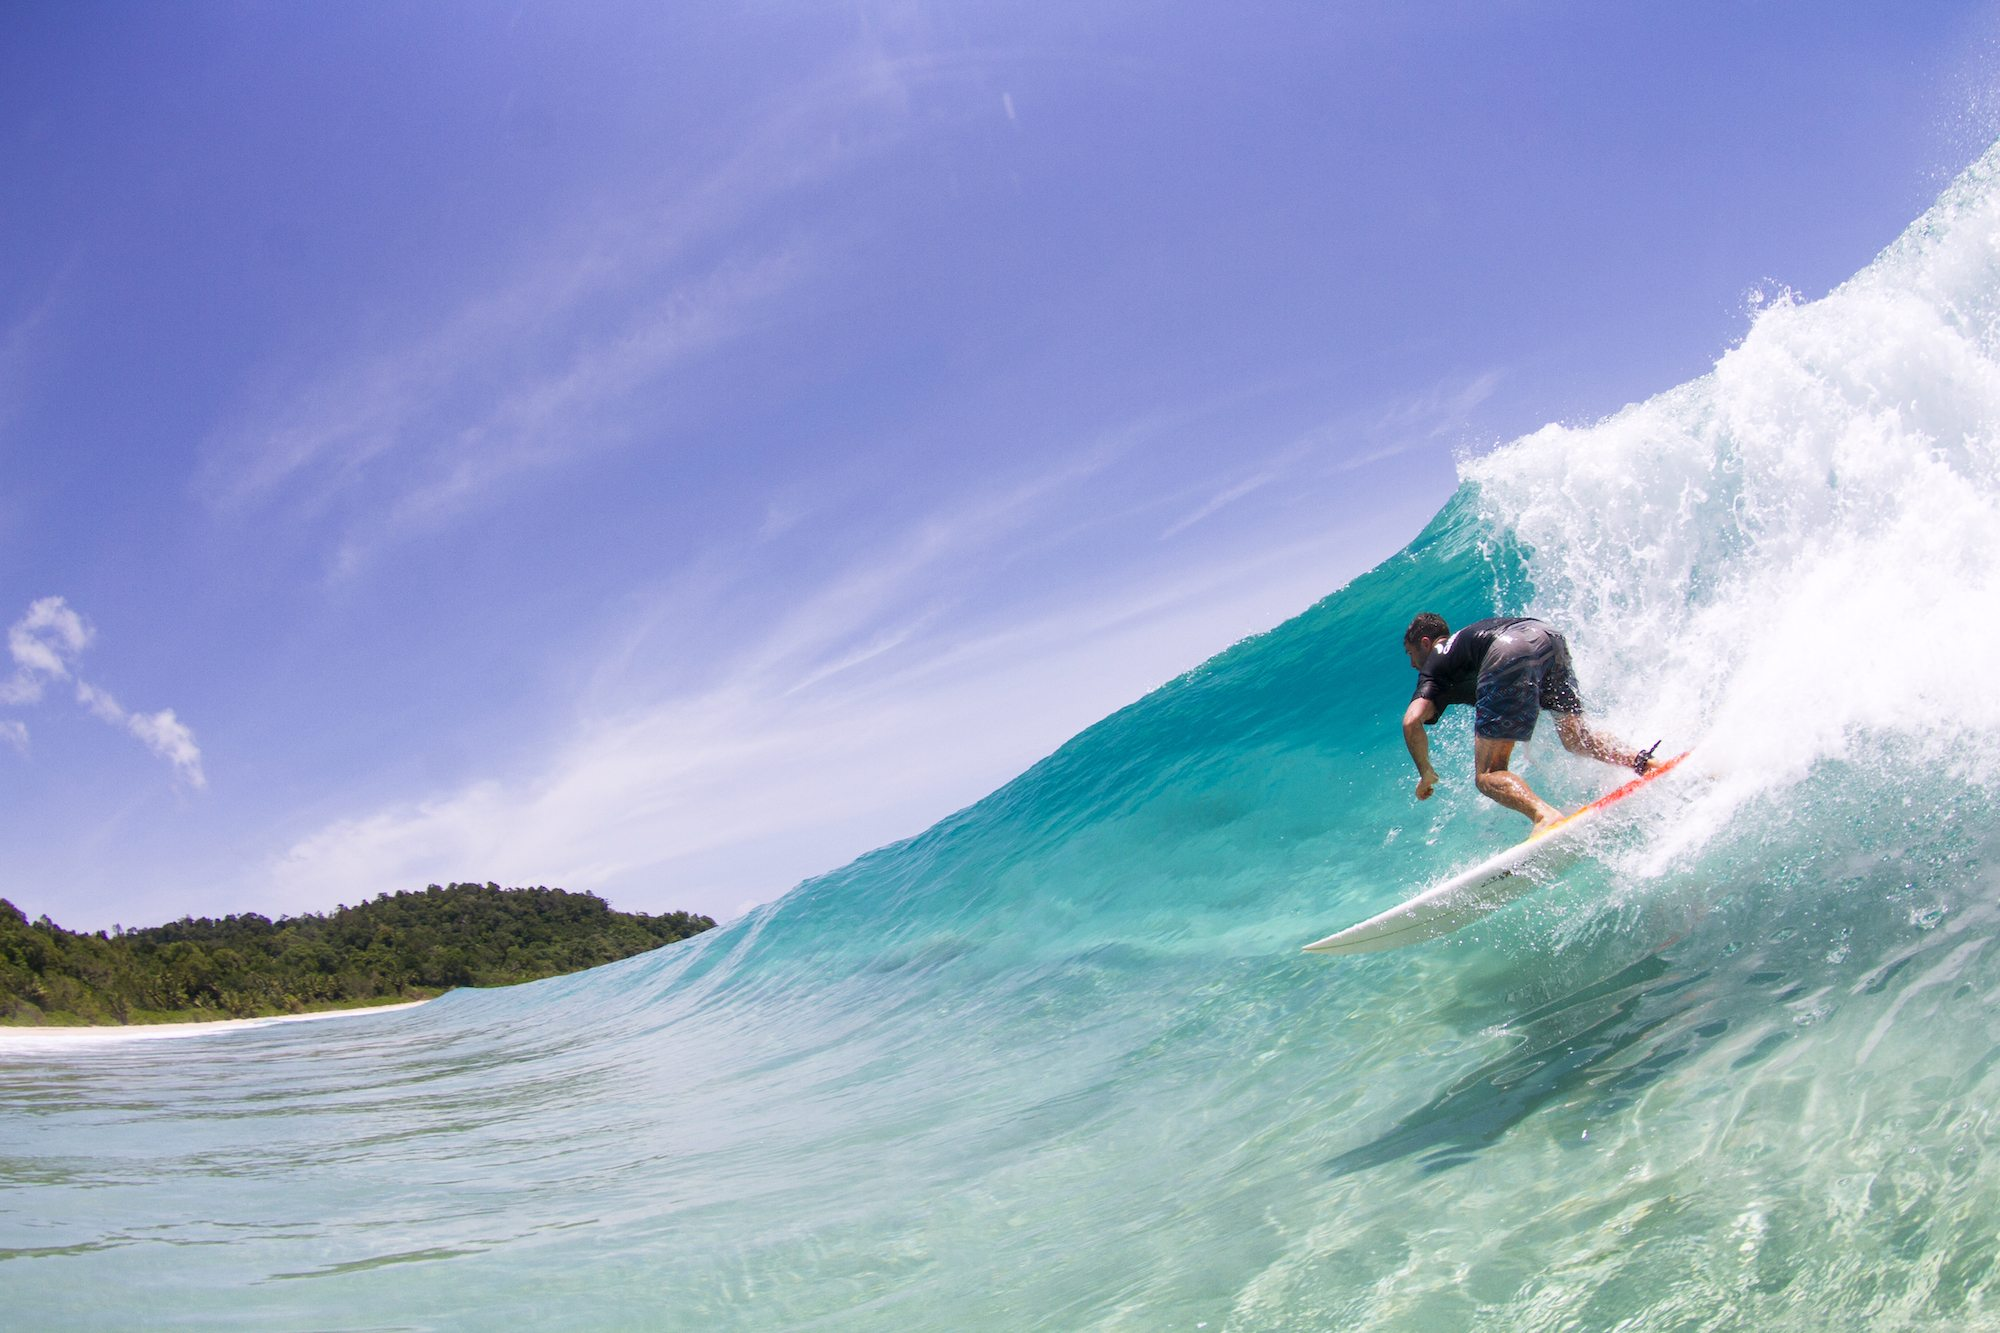 surfer in dumper wave, surf banyak